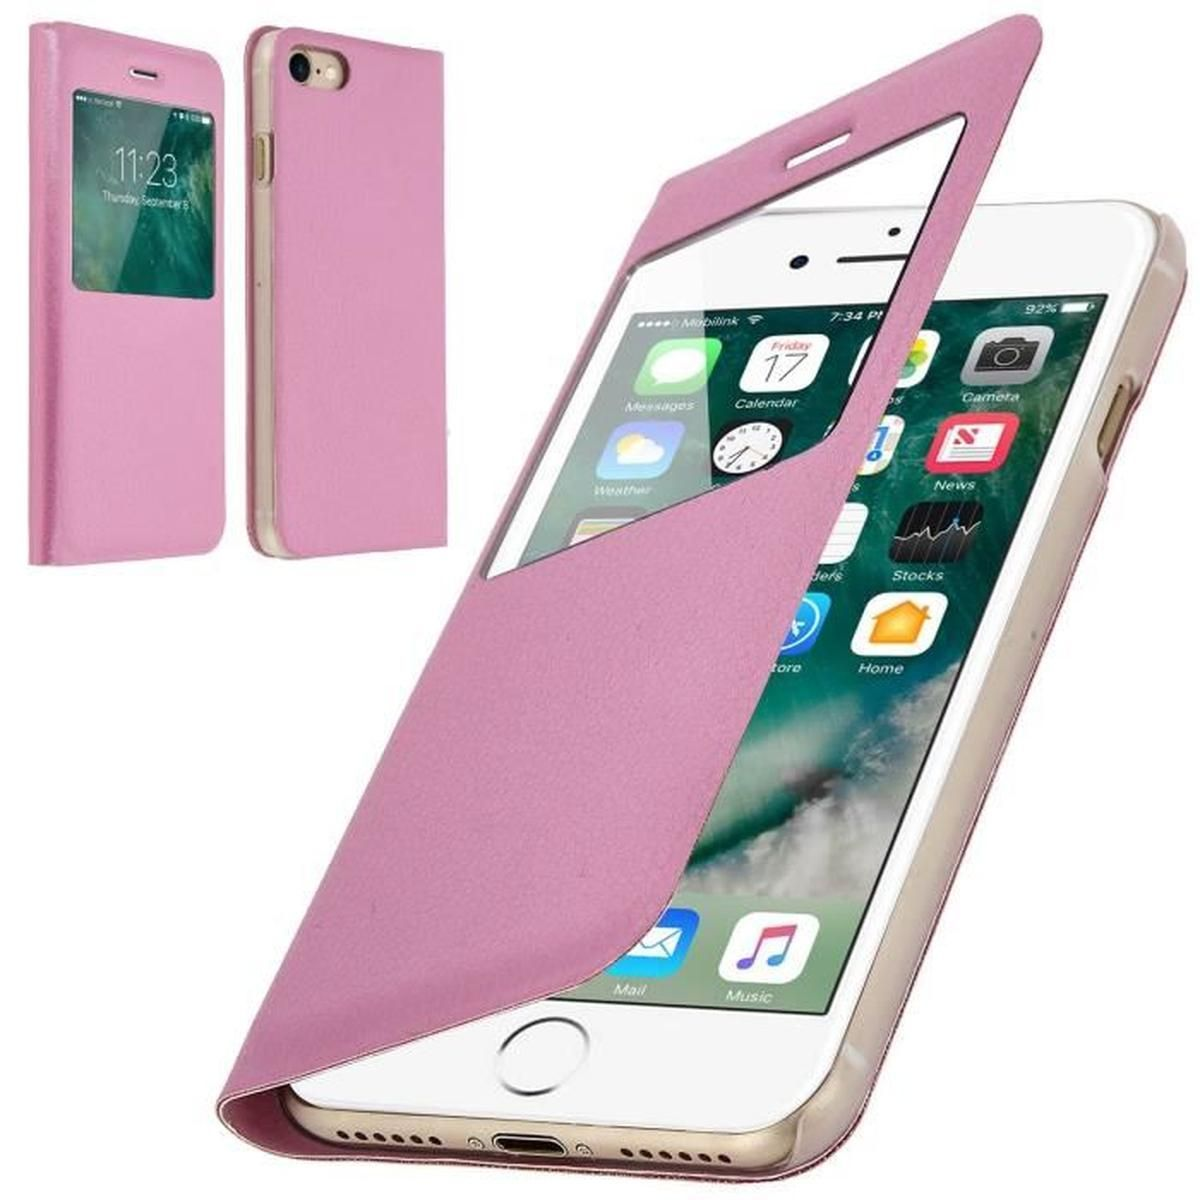 coque a clapet iphone 7 rose | Iphone 7, Iphone, Electronic products